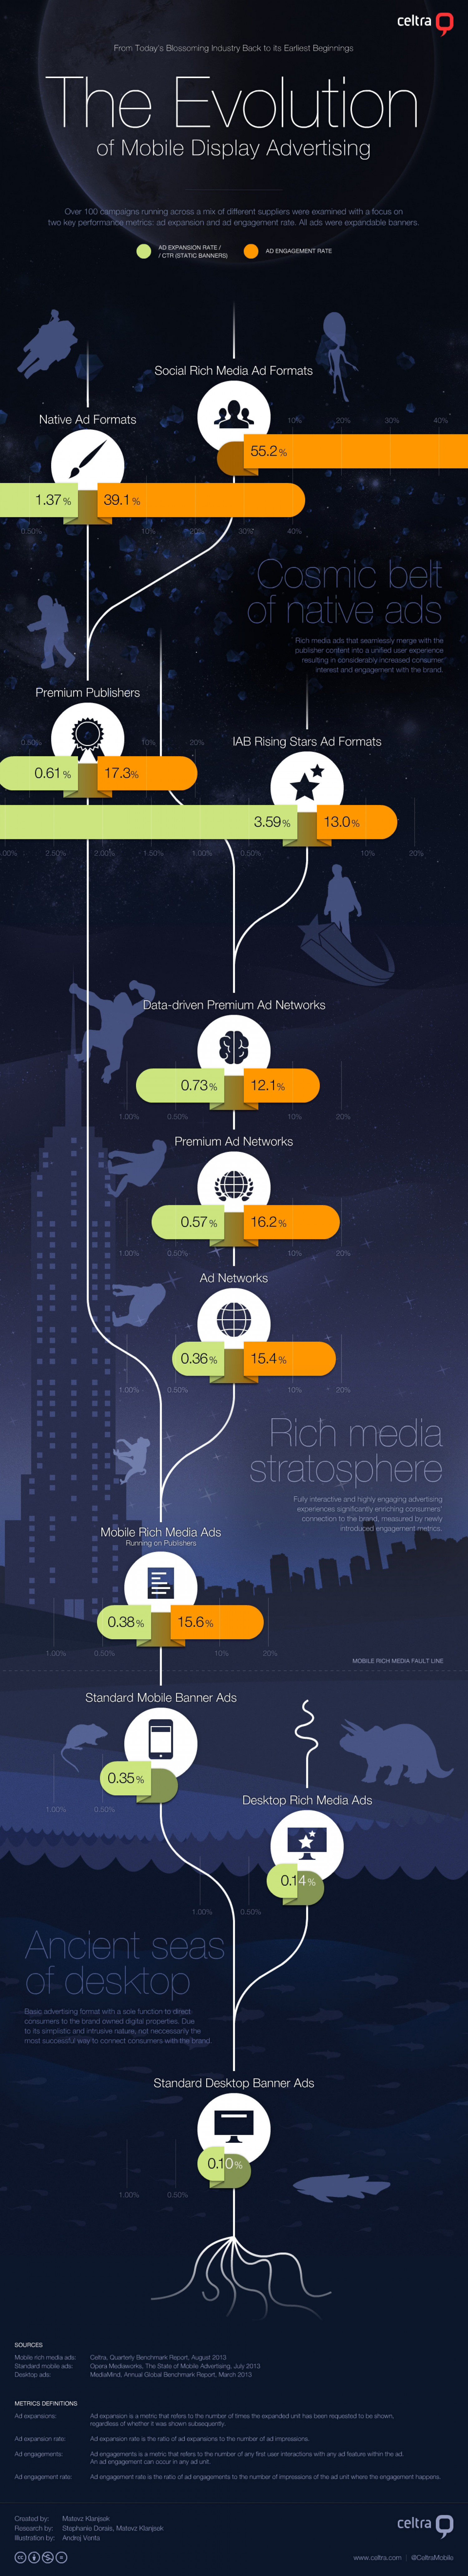 The Evolution of Mobile Display Advertising Infographic